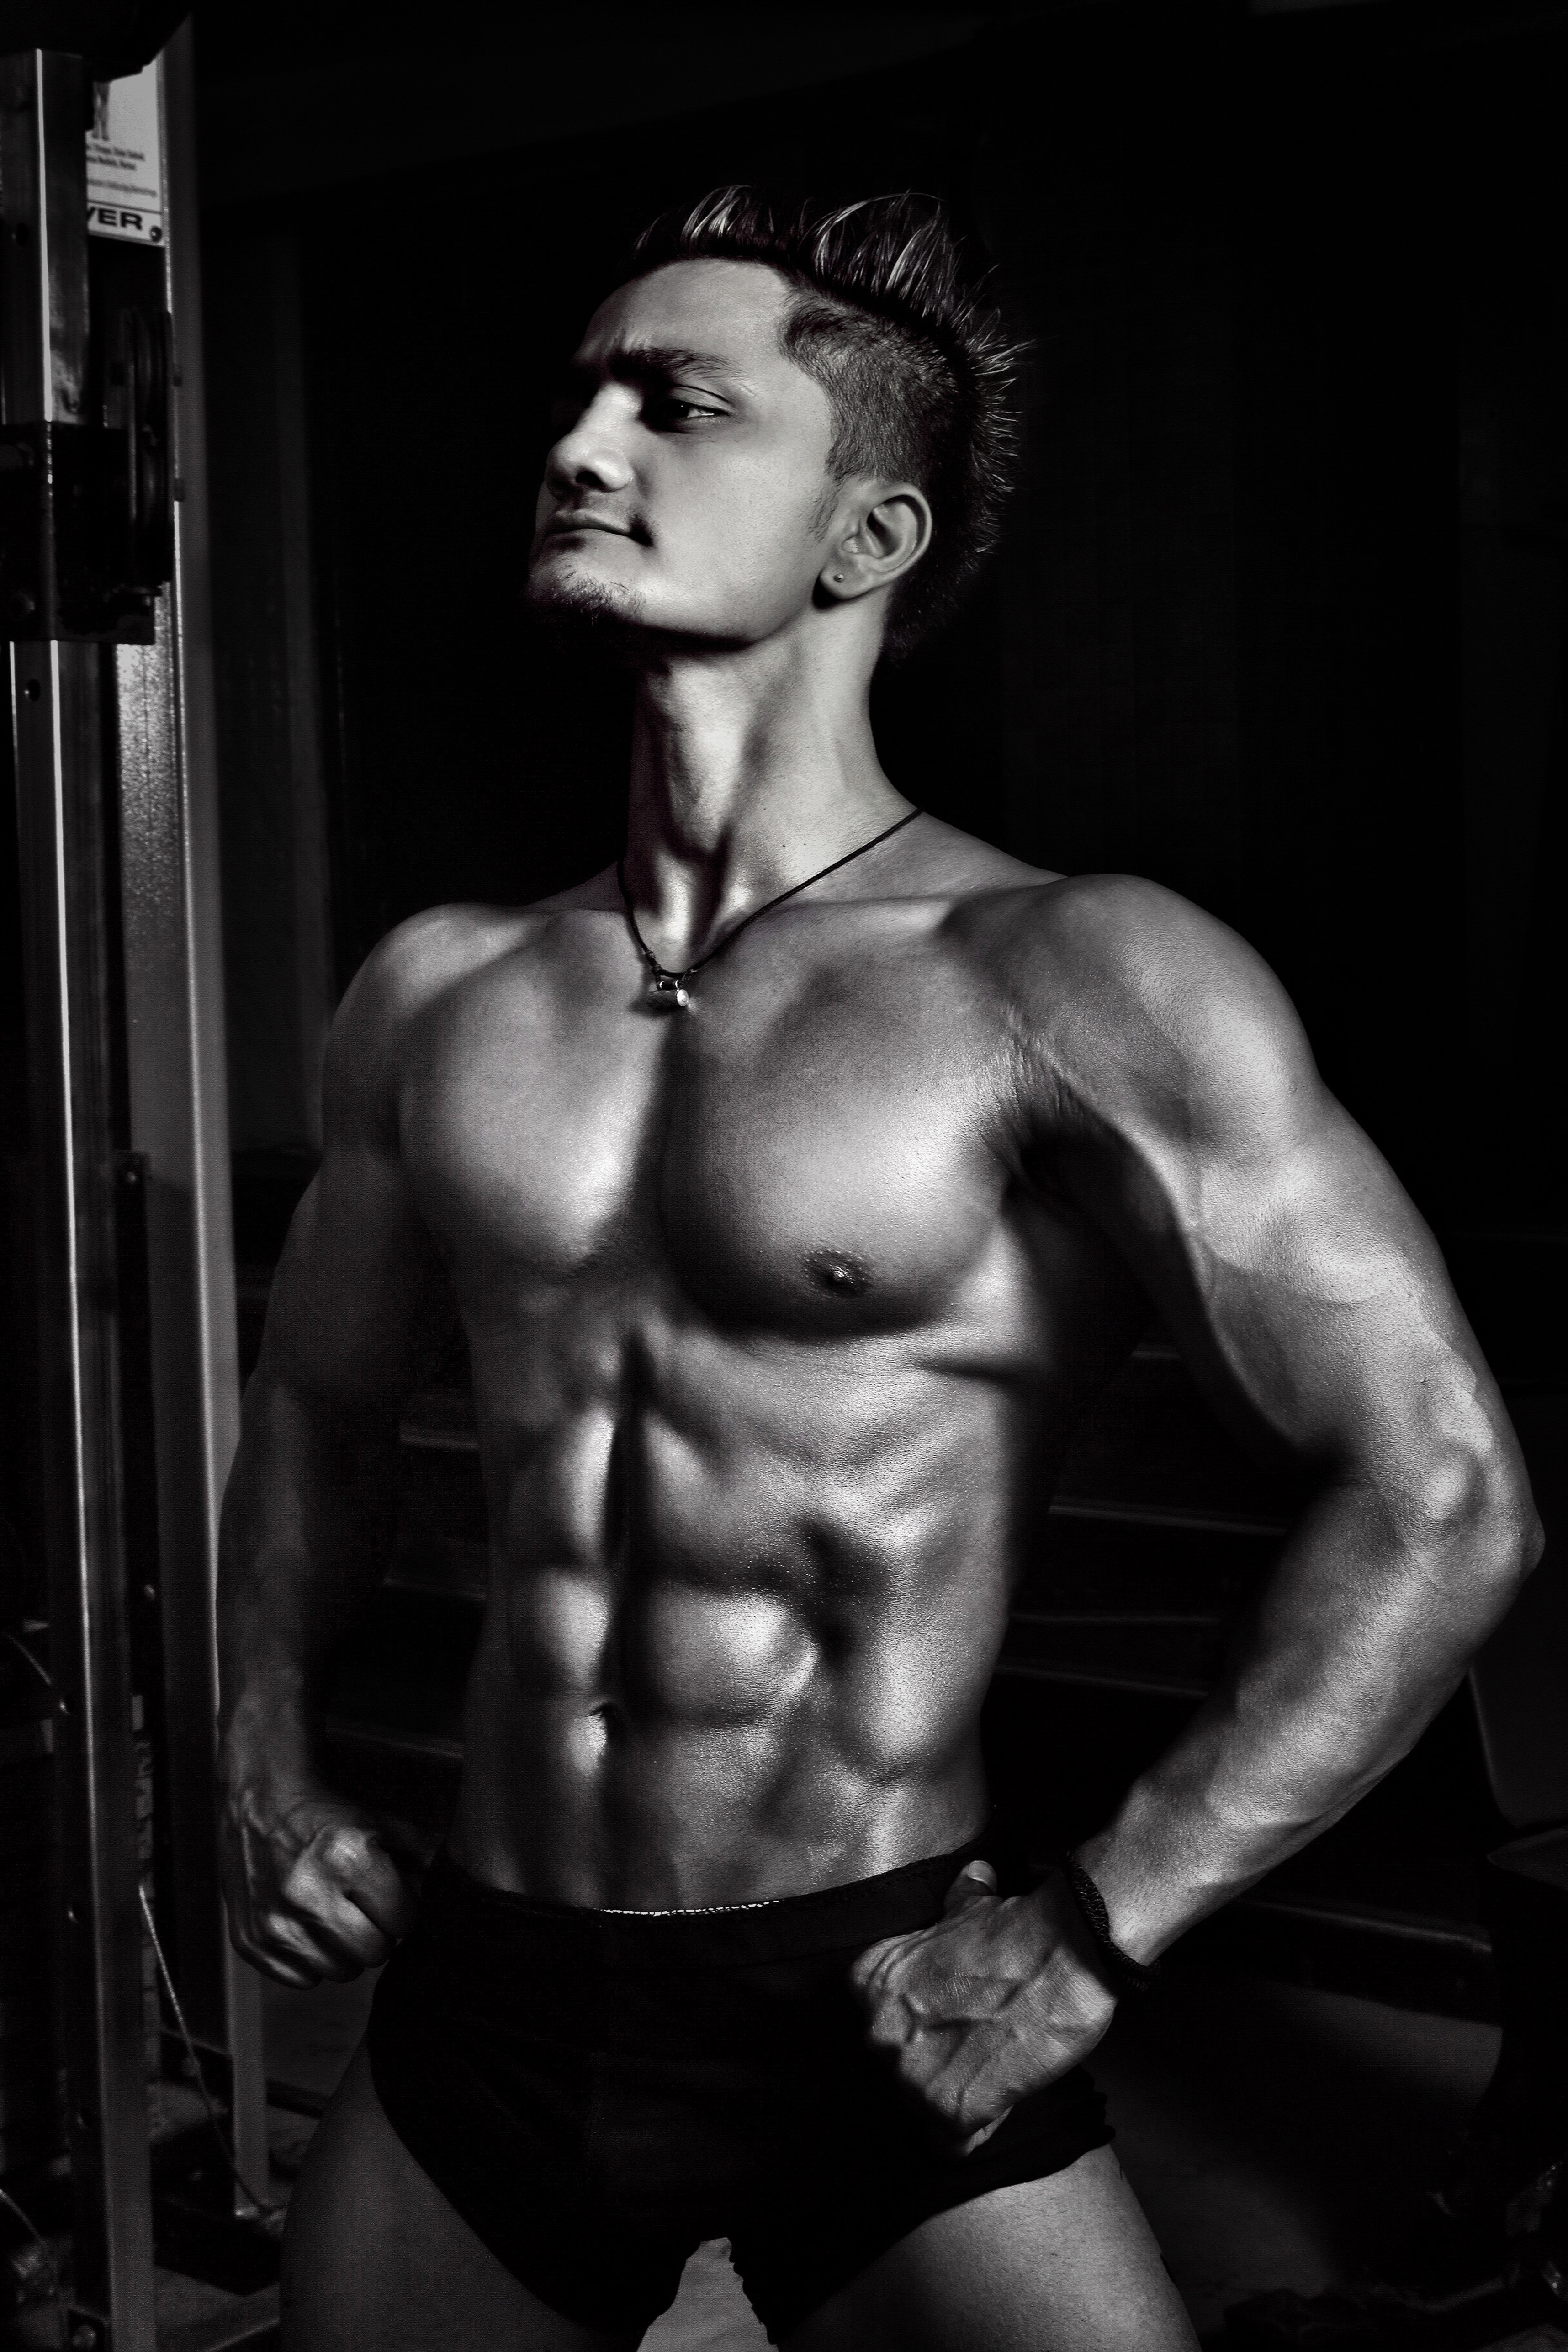 Grayscale Photography of Man in Short Standiung, Athlete, Strong, Strength, Shirtless, HQ Photo